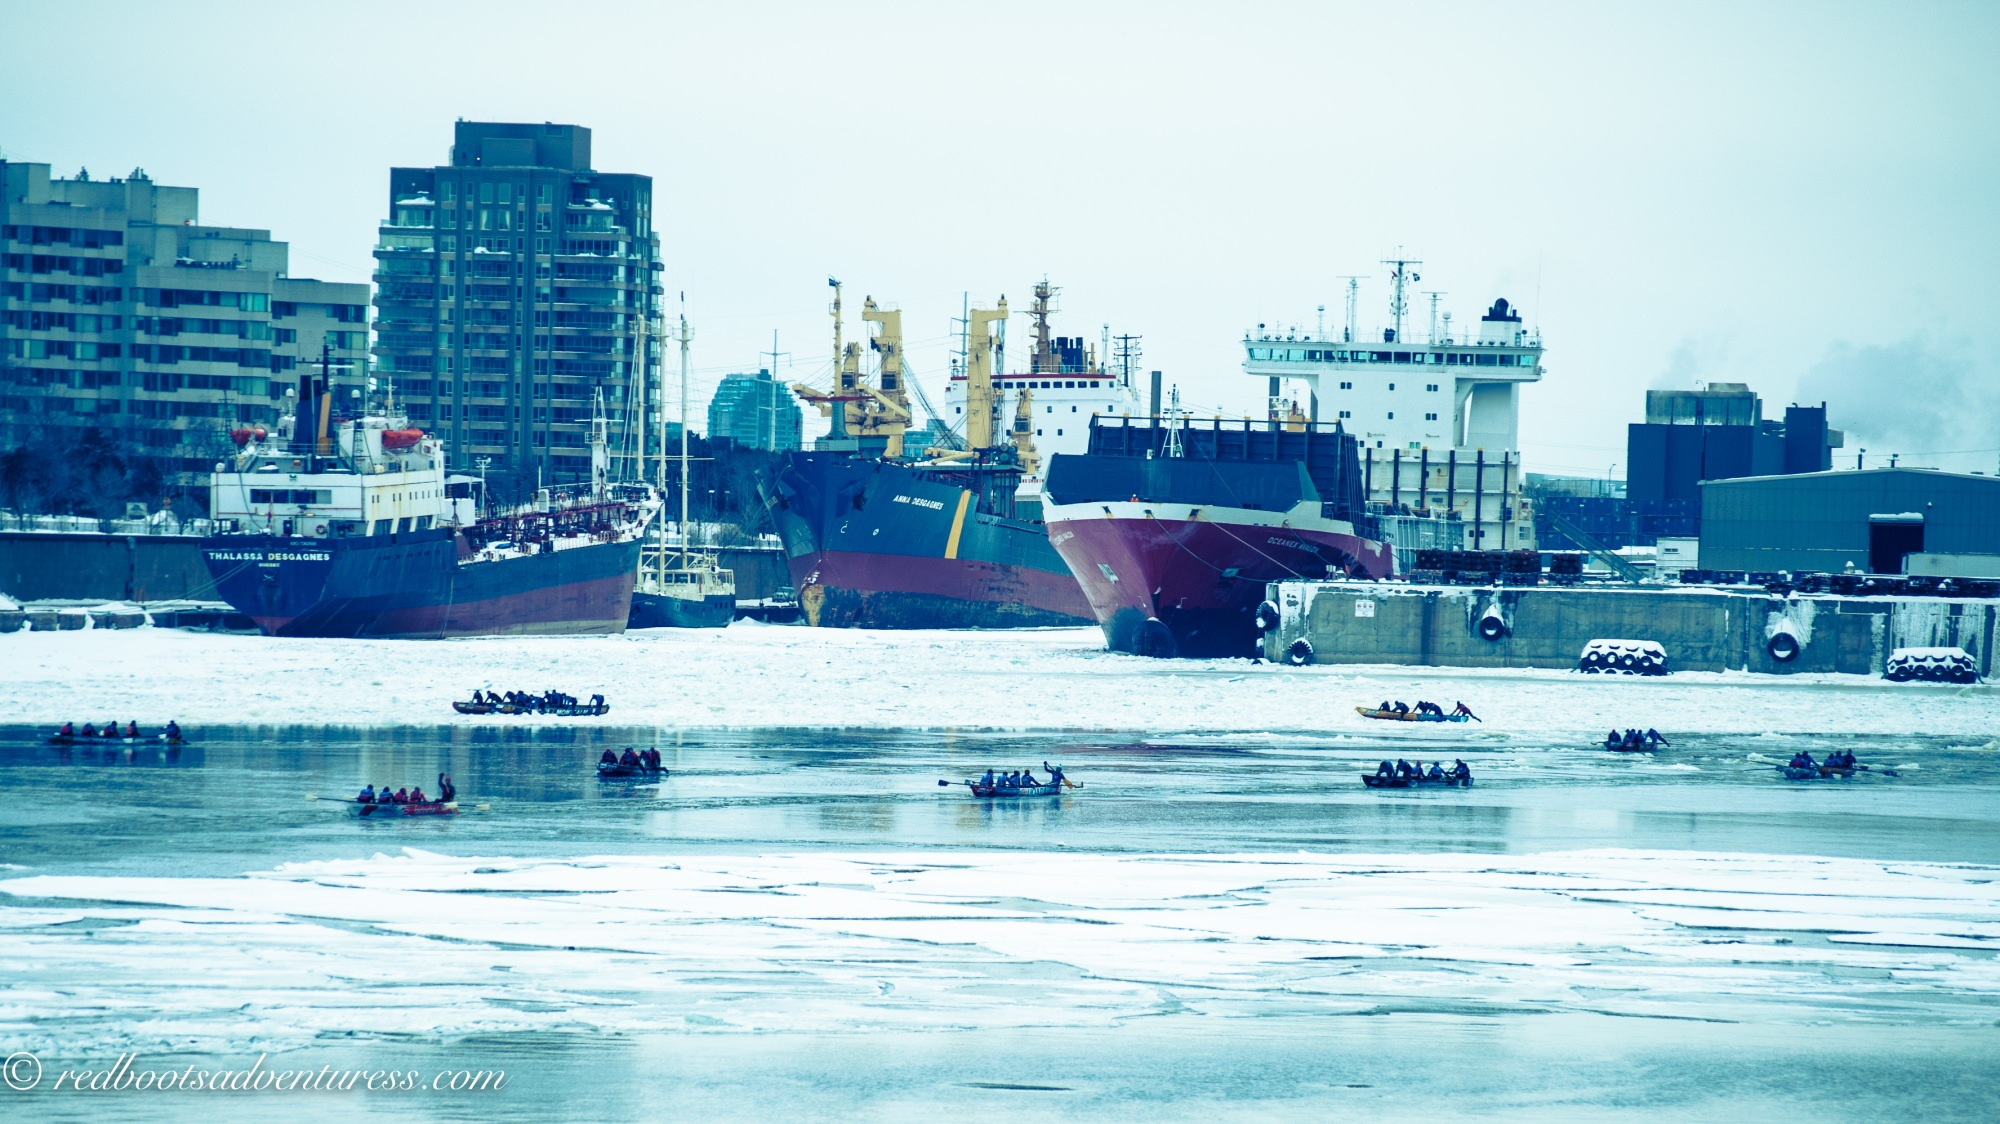 Ice Canoe Racing in Montreal's Old Port